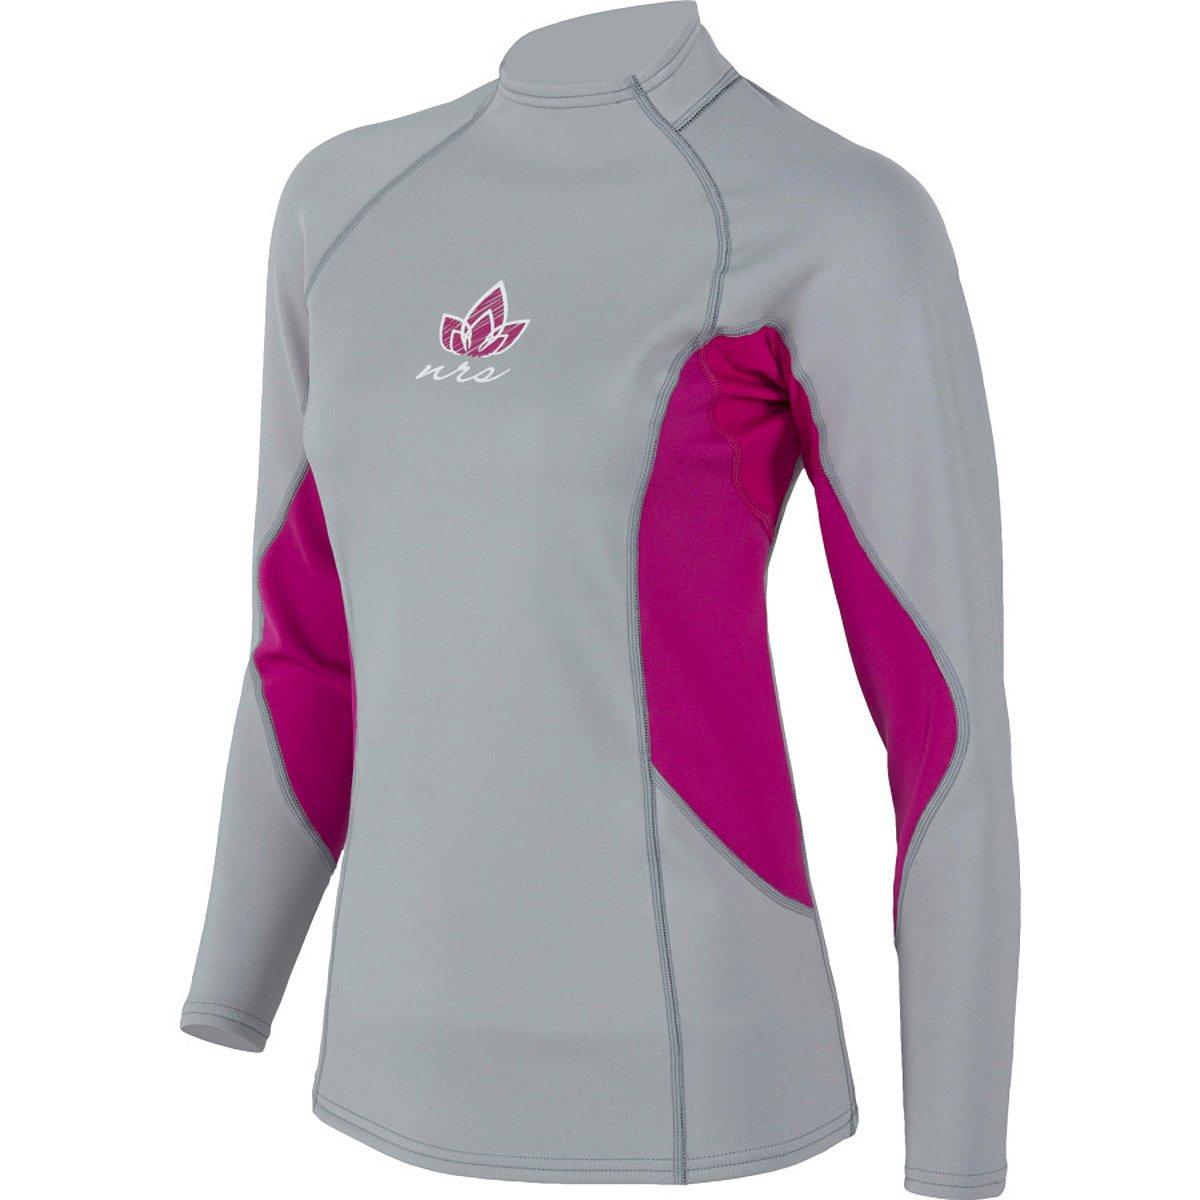 NRS HydroSkin 0.5 LS Shirt - Women's Grey / Purple Haze XS by NRS